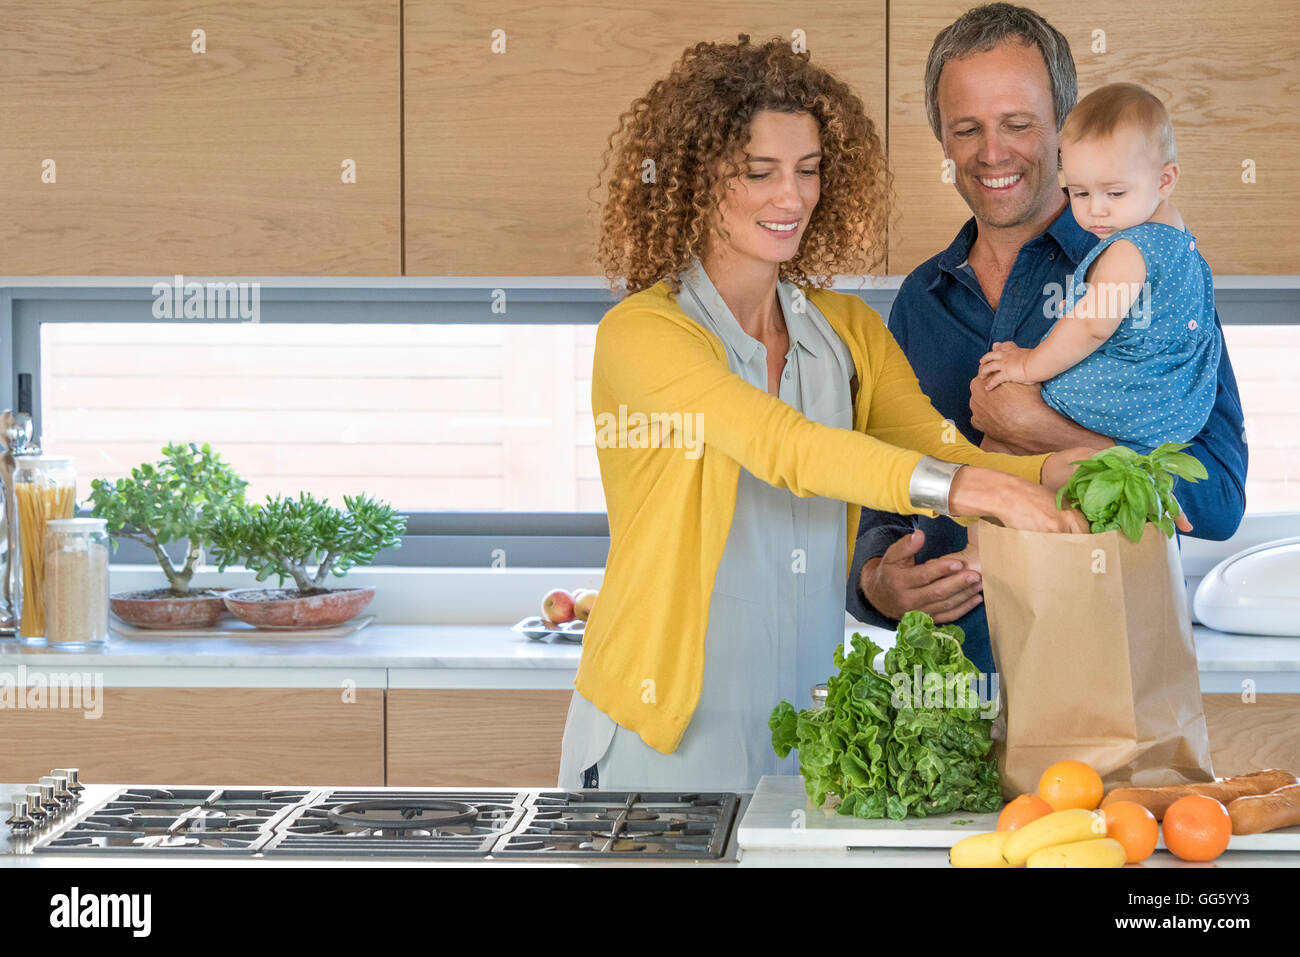 Family taking out food from paper bag in the kitchen - Stock Image